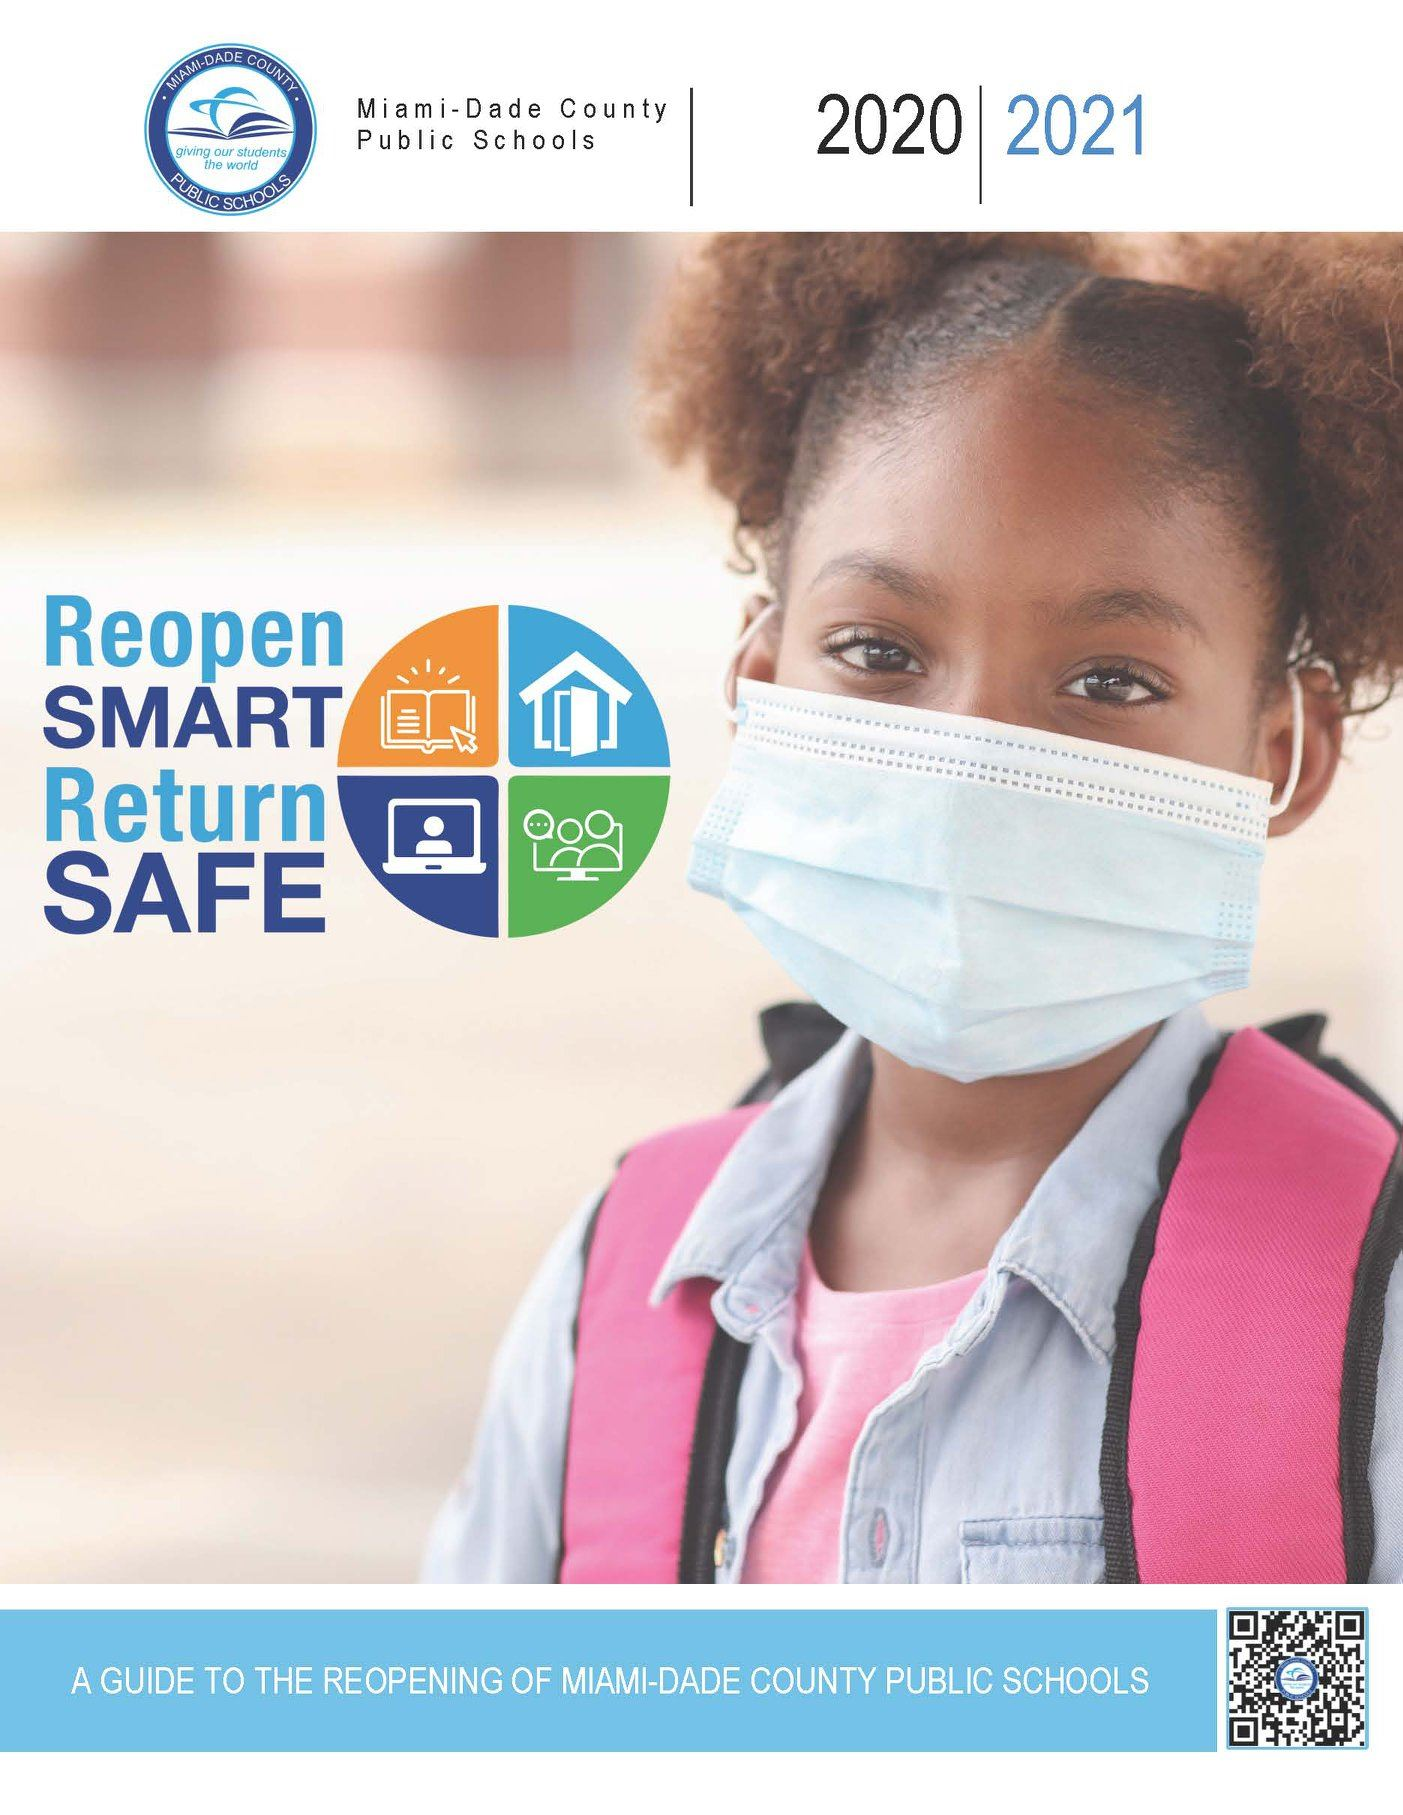 Reopen Smart Return Safe 2020-21 School Year A Guide To The Reopening of Miami-Dade County Public Sc